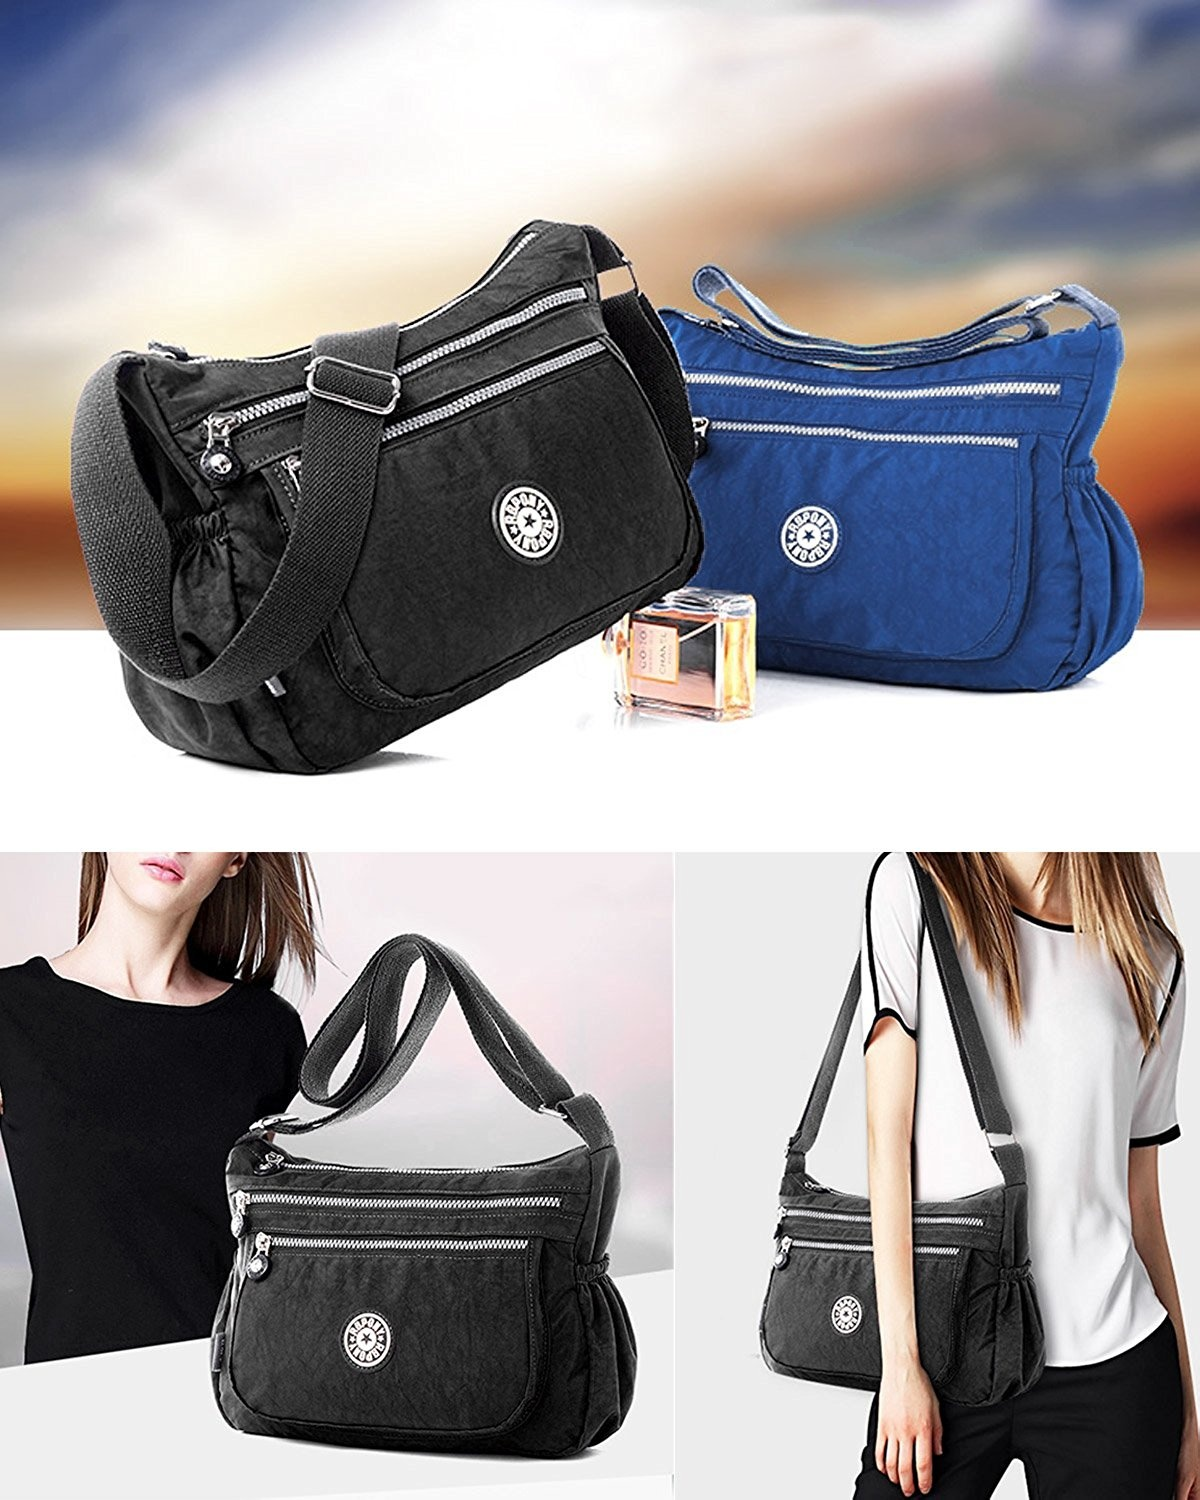 8152adb886cc ABLE Women Anti Splash Water Shoulder Messenger Crossbody Bags by Unbranded  - Shop Online for Bags in Australia